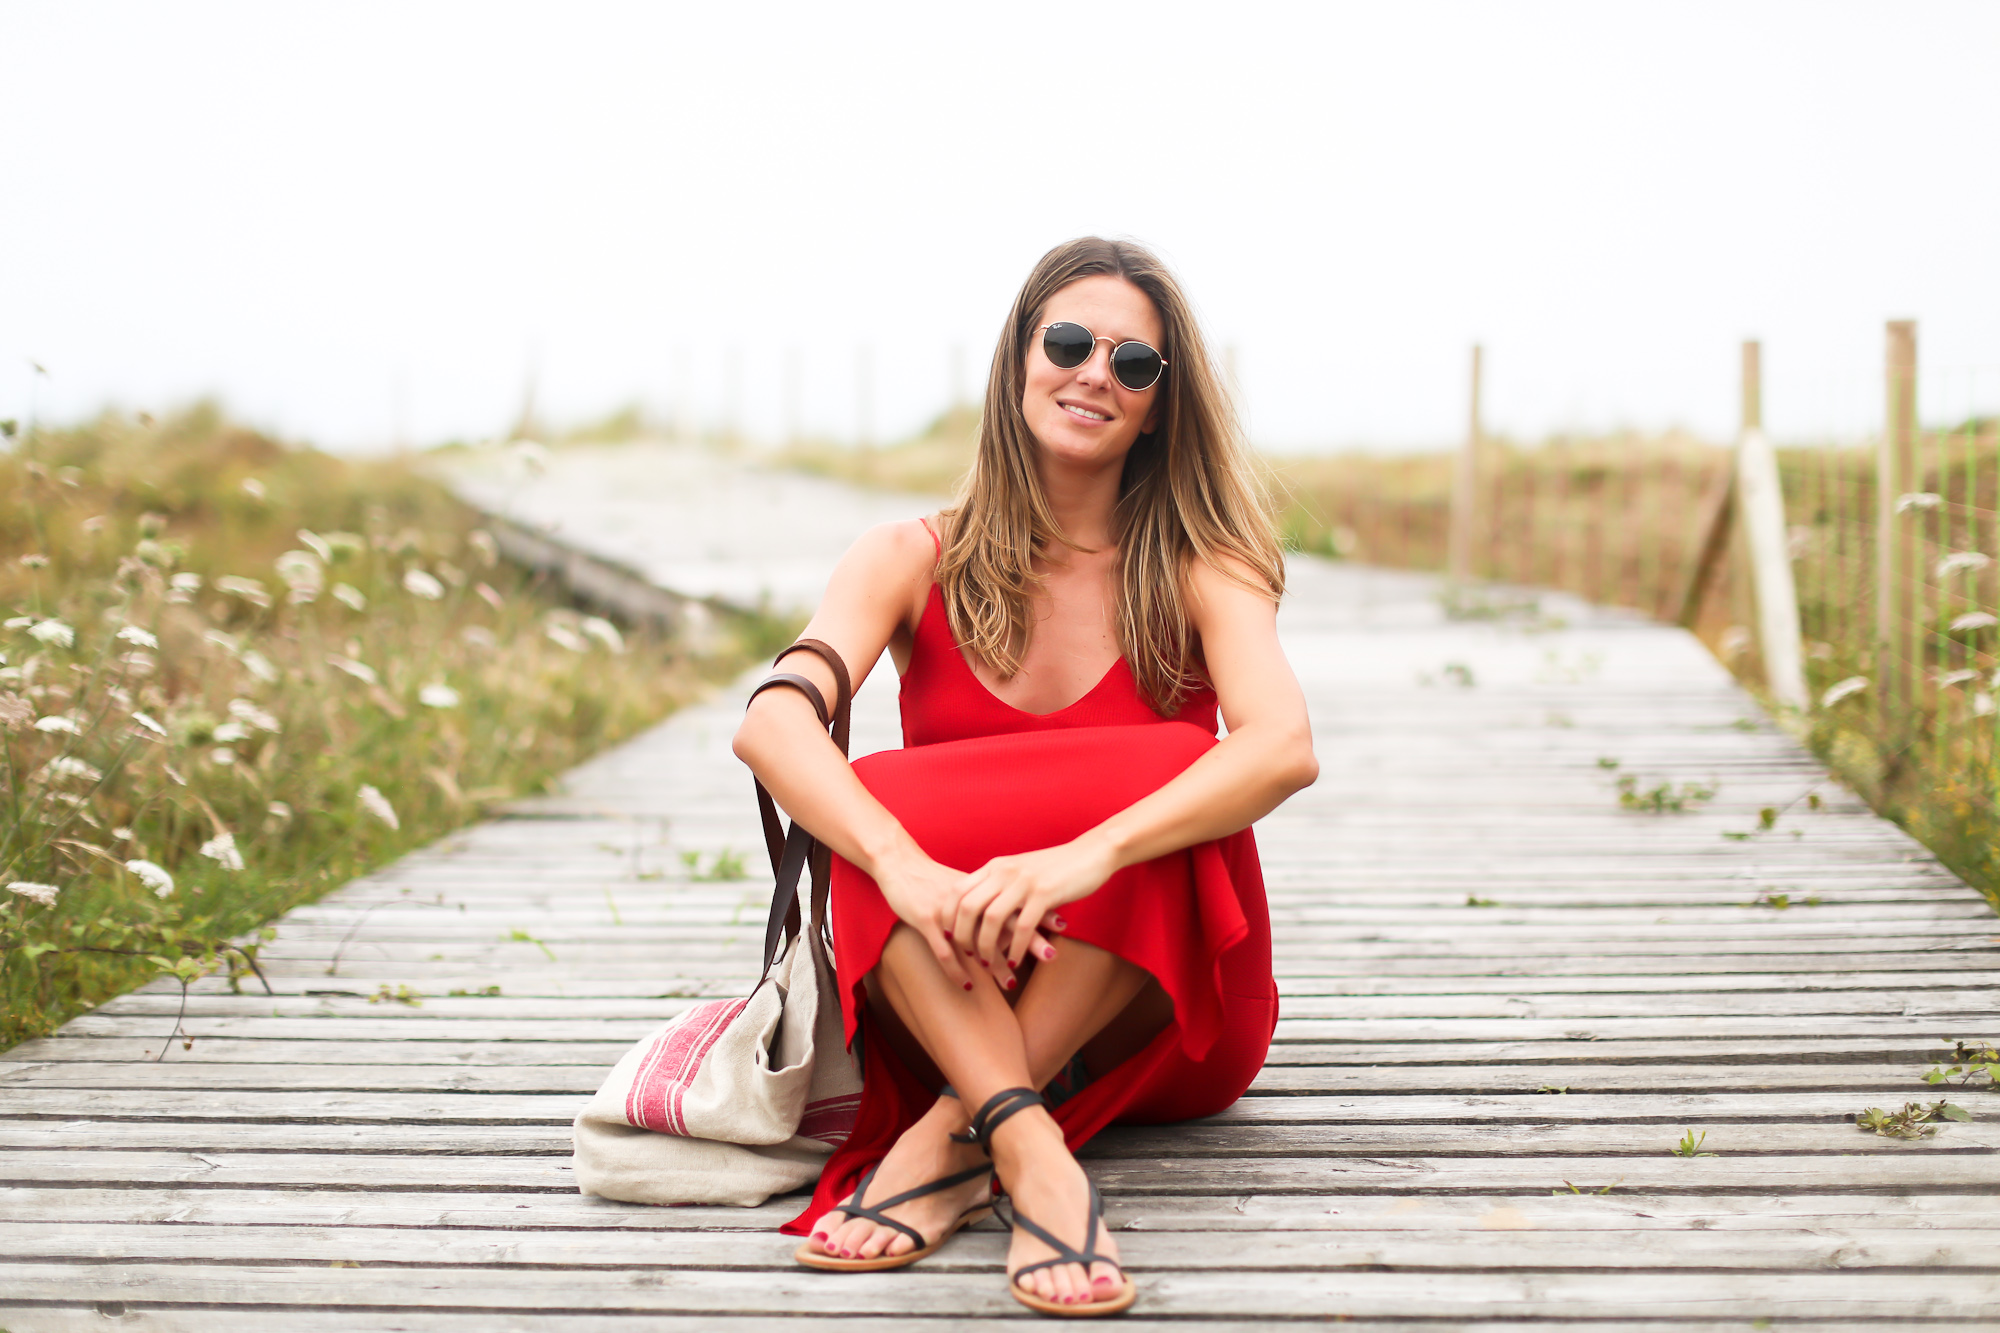 Clochet_streetstyle_zara_limitededition_red_knitdress_artemisia_roman_sandals_maternity_pregnantstyle-5